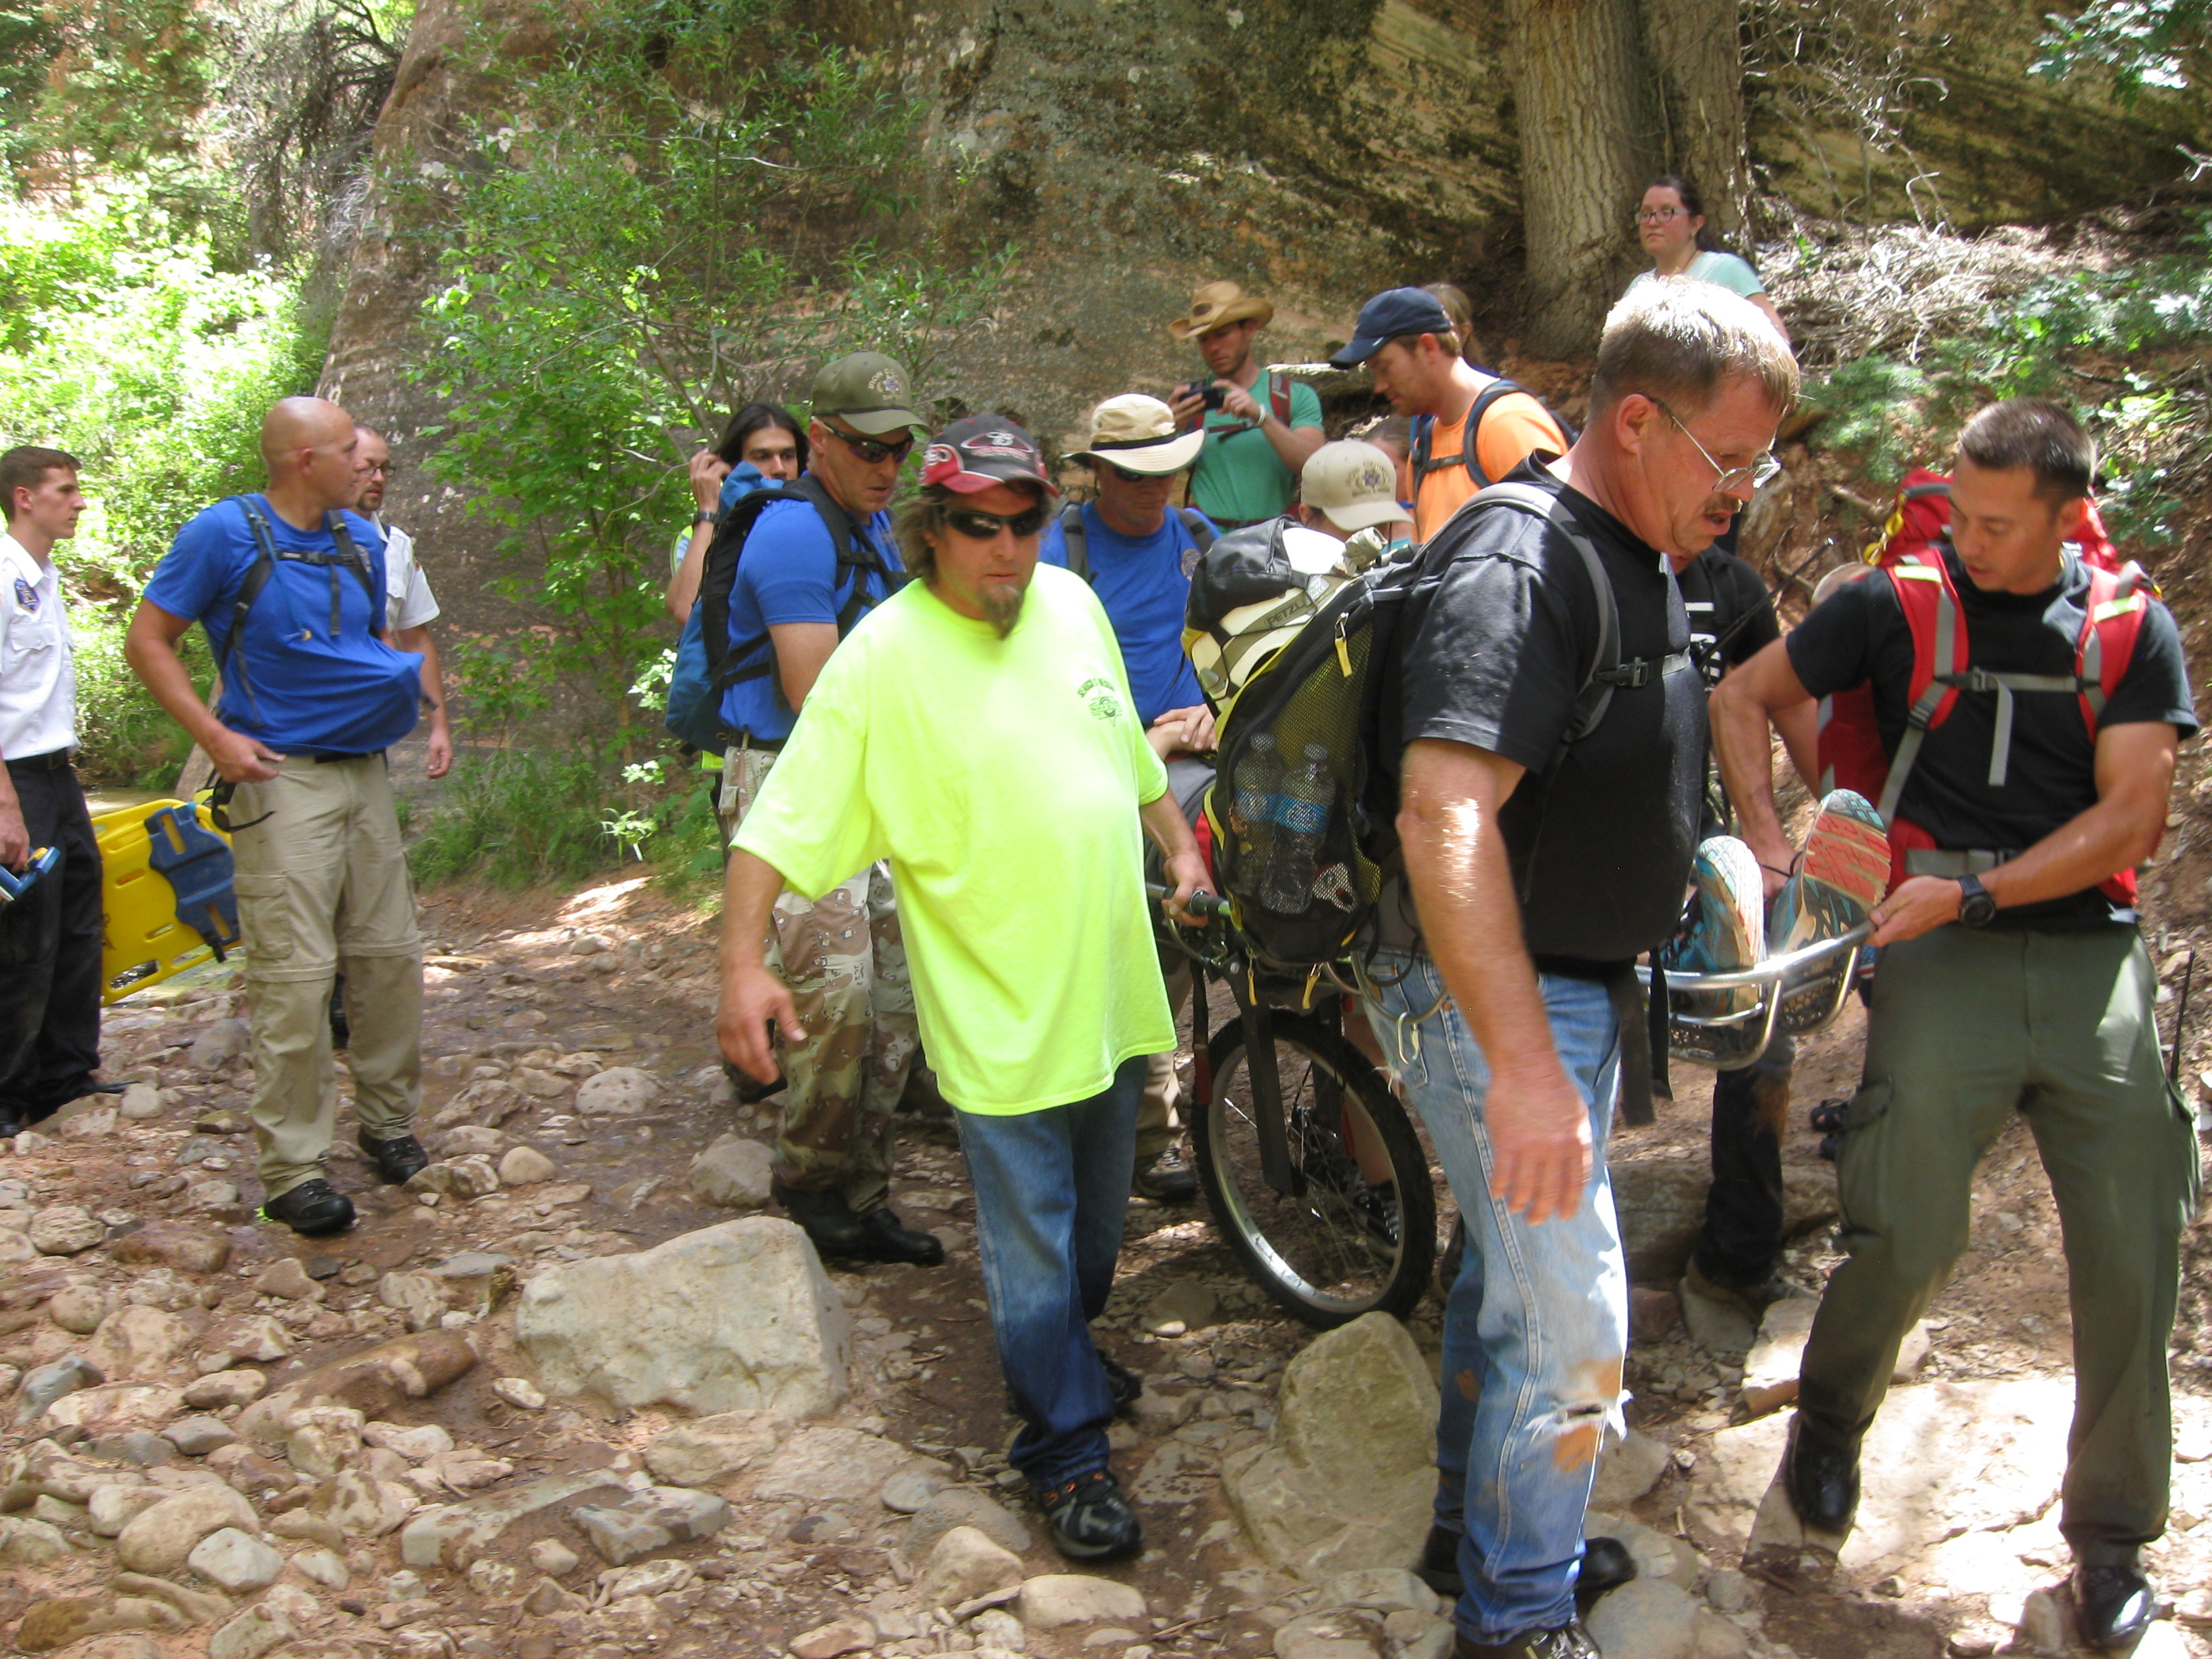 Iron County Sheriff's Search and Rescue and Ropes teams work together to carry an injured man out of Kanarraville Falls, Utah, July 16, 2016 | Photo courtesy of Iron County Sheriff's Office St. George/Cedar City News